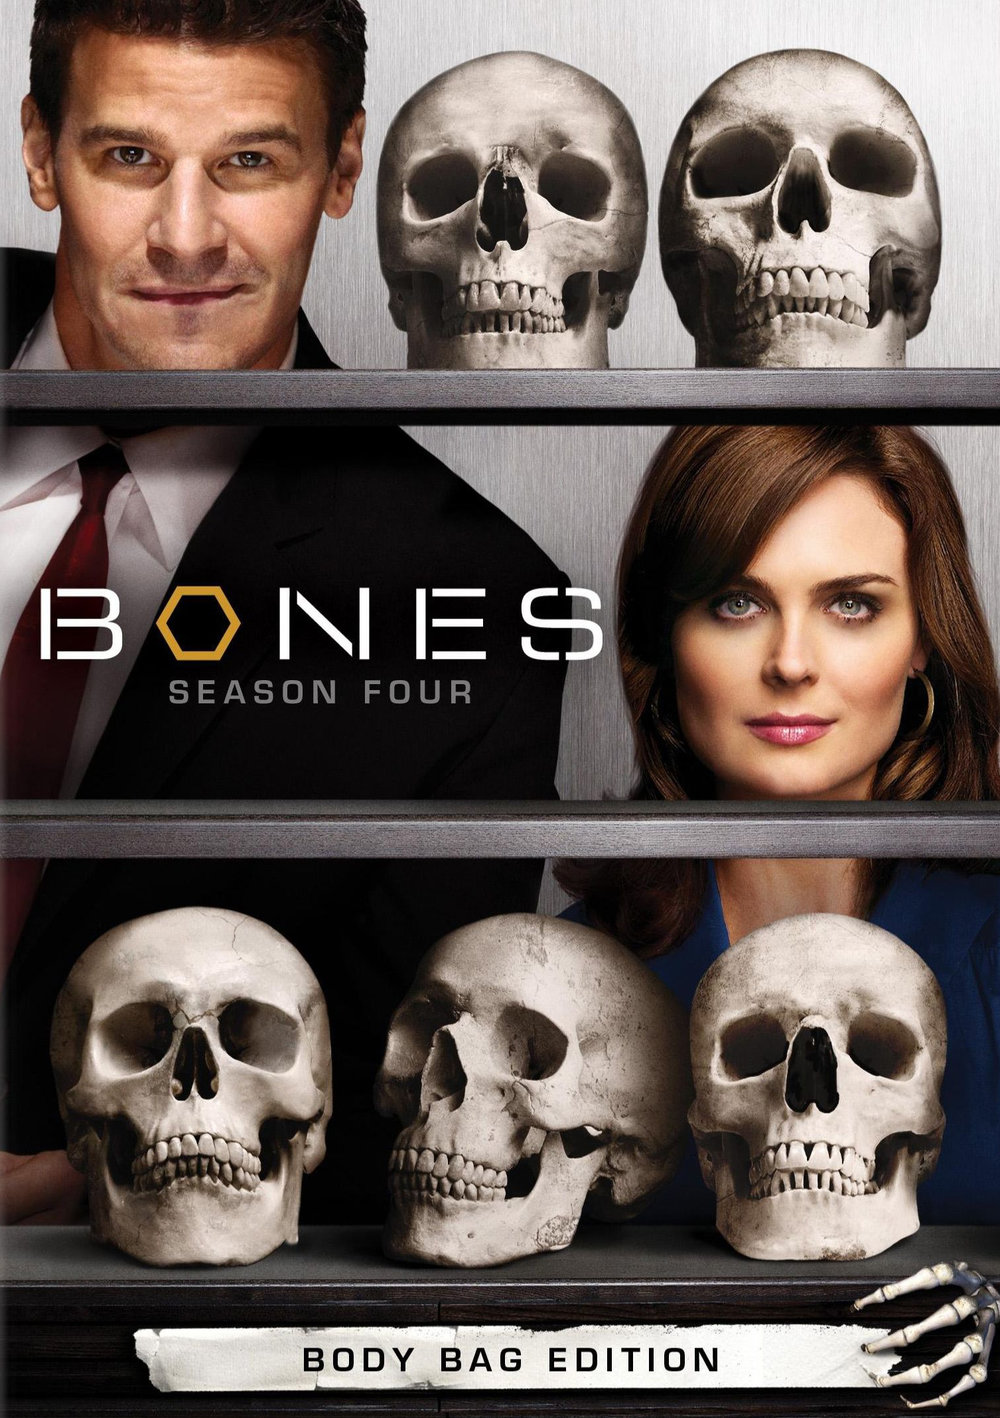 bones-season-4-poster-and-dvd-cover.jpg